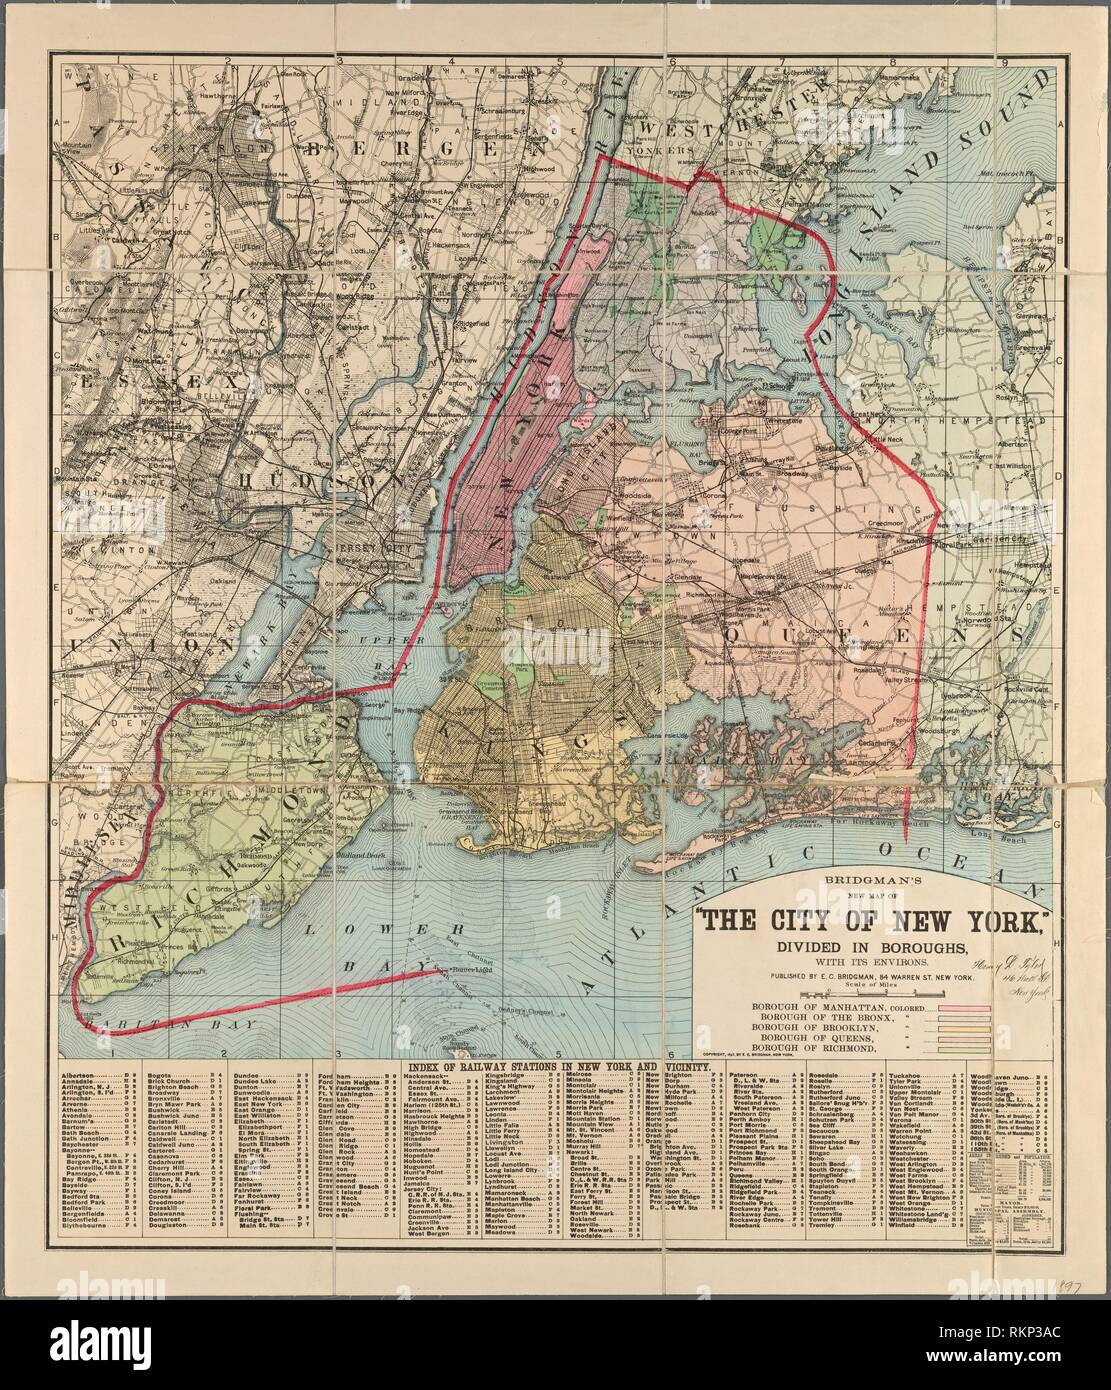 Map Of Cities In New York State.Bridgman S New Map Of The City Of New York Divided Into Boroughs